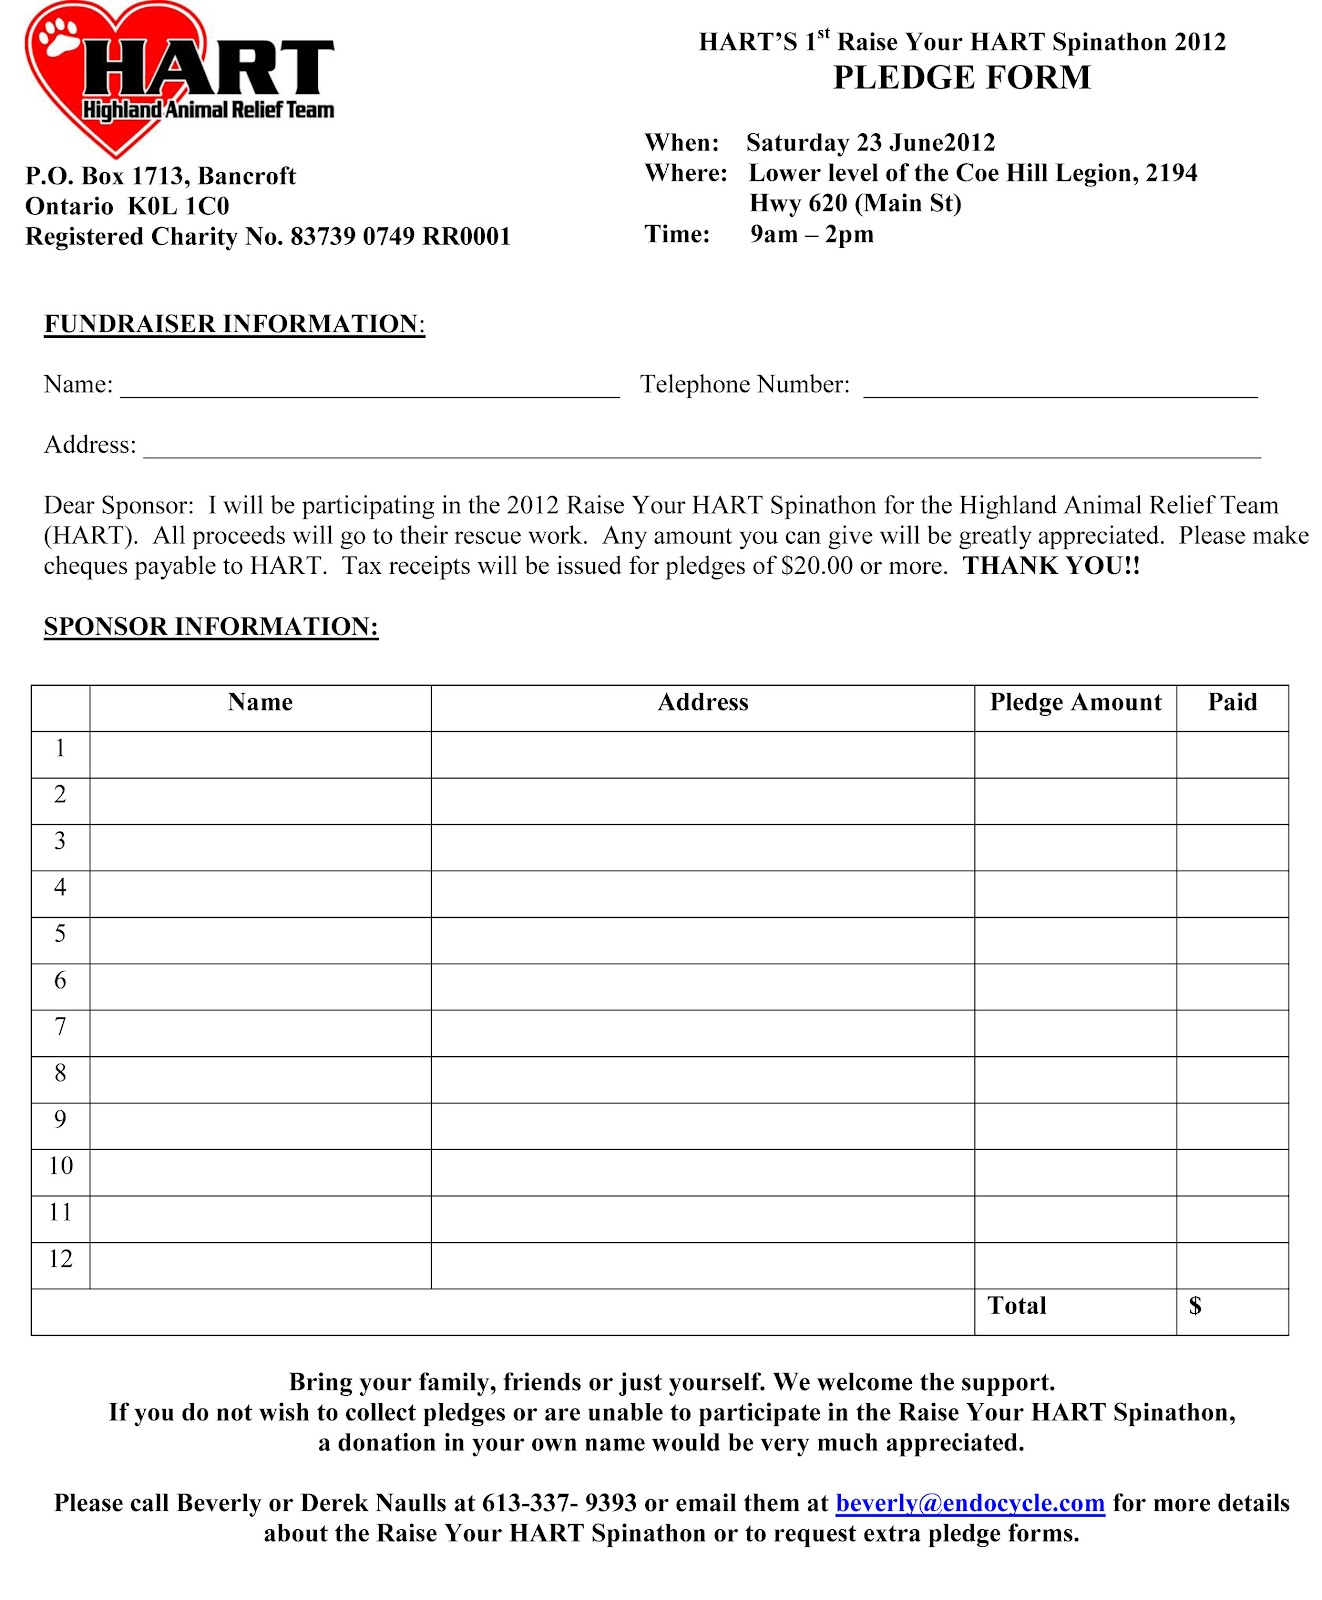 Pin fundraising pledge form on pinterest for Charity pledge form template